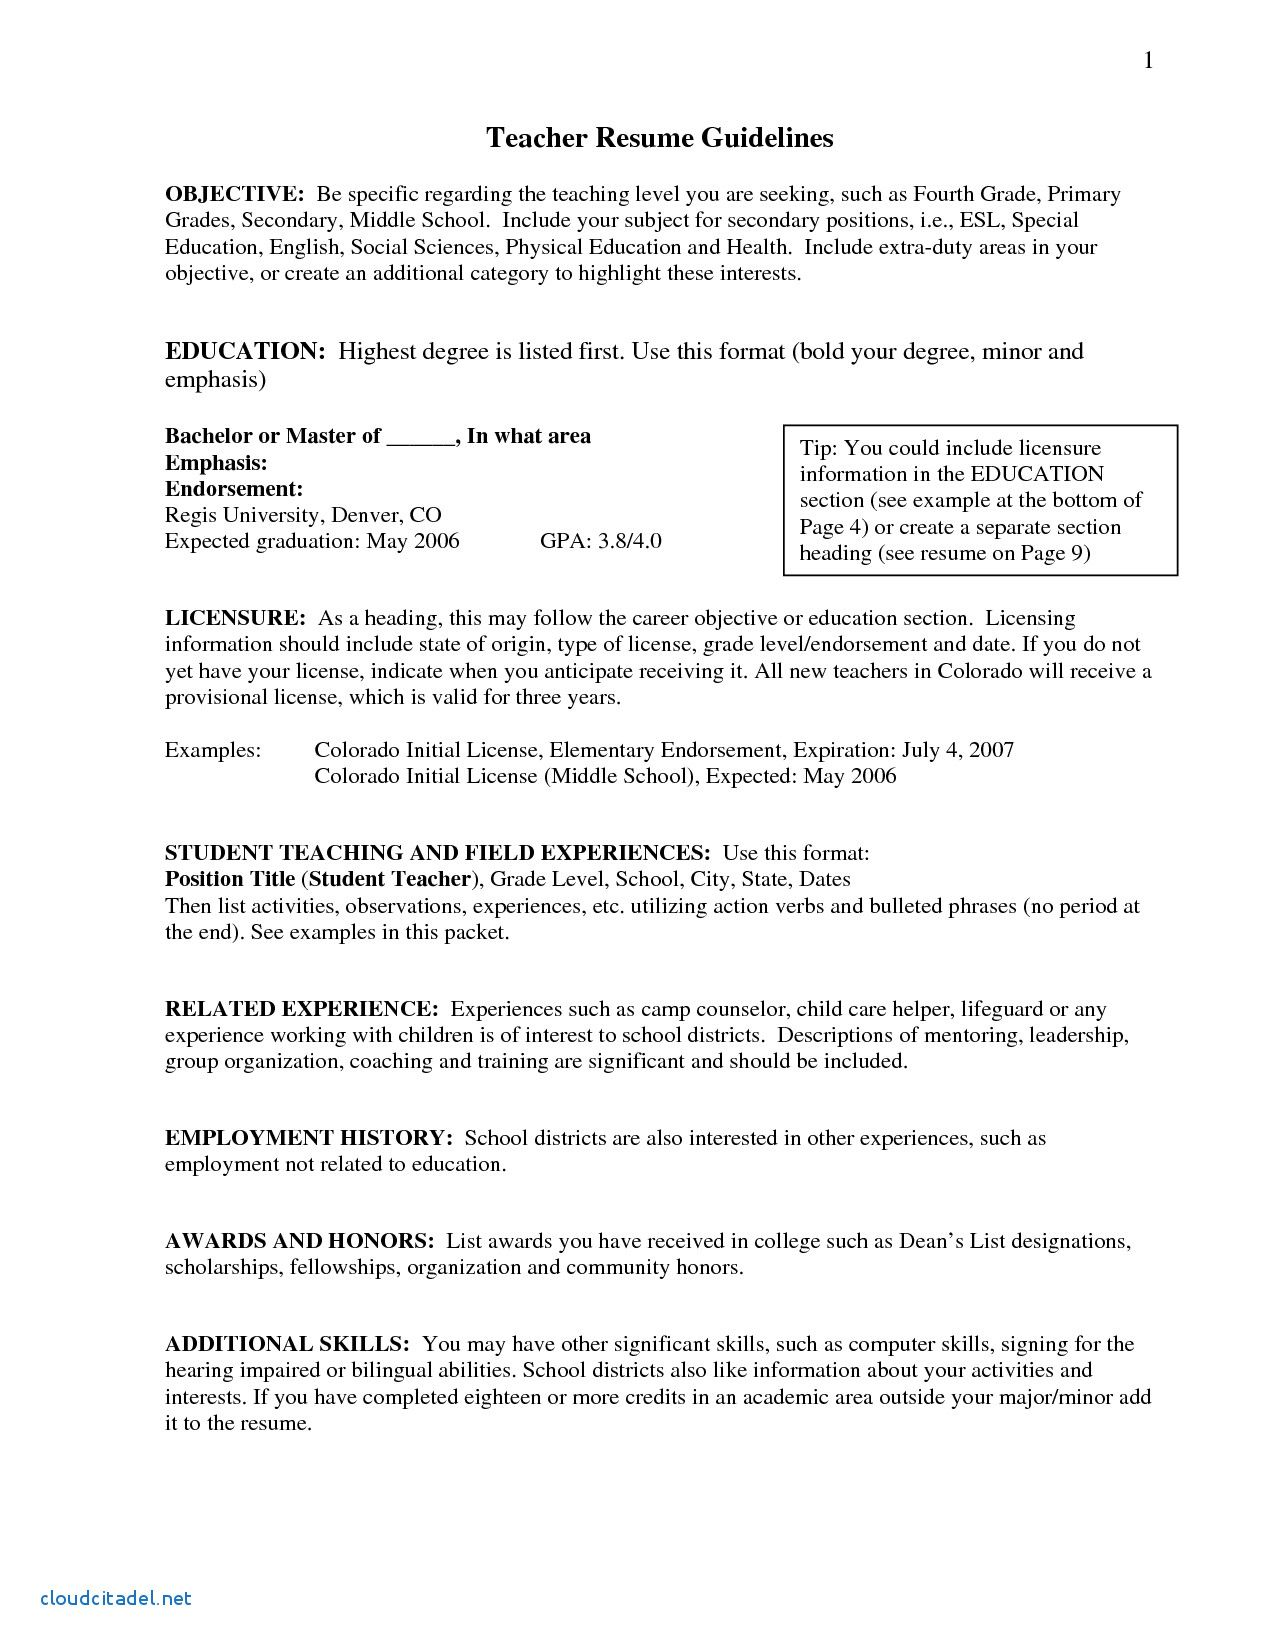 Star Format Resume Simple Job Resume Format First Time Resume